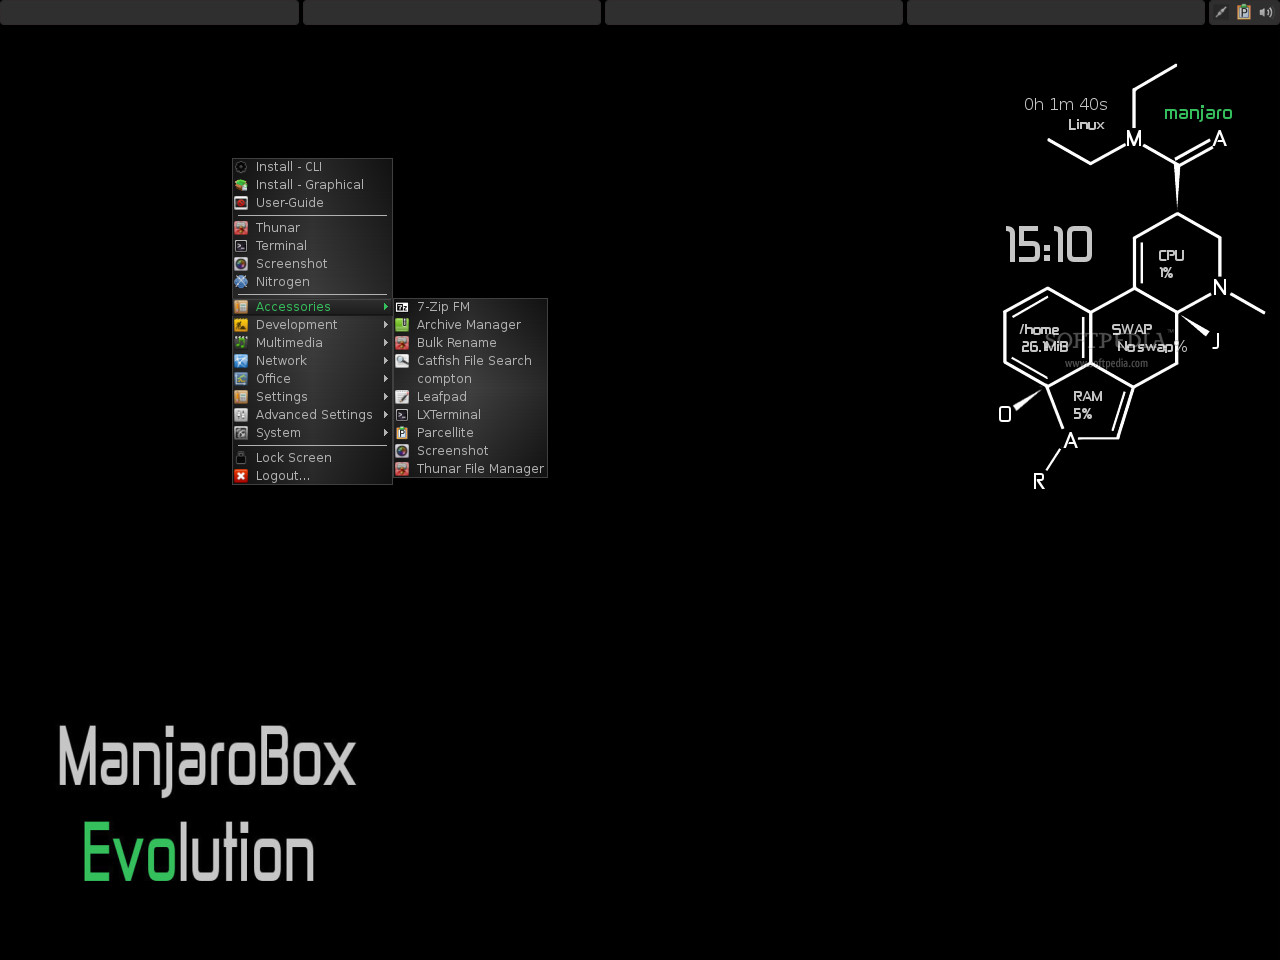 Manjaro Openbox 0 8 9 Rc3 Is A Light And Minimalistic Arch Based Linux Distro